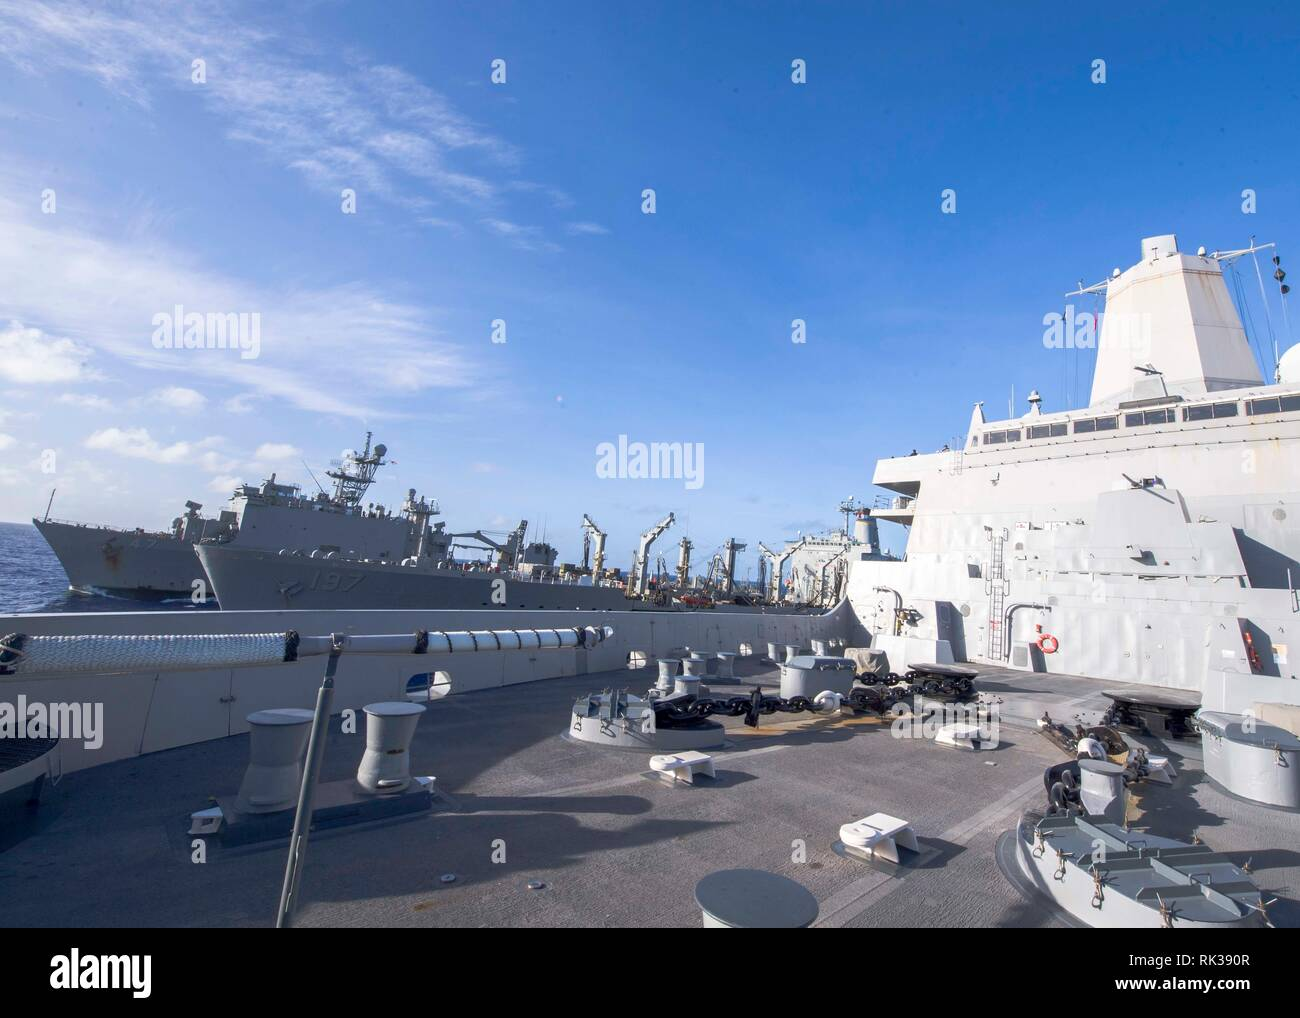 190207-N-PH222-1042 PACIFIC OCEAN (Feb. 7, 2019) The San Antonio-class amphibious transport dock ship USS Anchorage (LPD 23), right, participates in an underway replenishment with fleet replenishment oiler USNS Pecos (T-AO 197), center, and the Whidbey Island-class amphibious dock landing ship USS Rushmore (LSD 47) during a deployment of the Essex Amphibious Ready Group (ARG) and 13th Marine Expeditionary Unit (MEU). The Essex ARG/13th MEU is a capable and lethal Navy-Marine Corps team deployed to the 7th fleet area of operations to support regional stability, reassure partners and allies and  - Stock Image